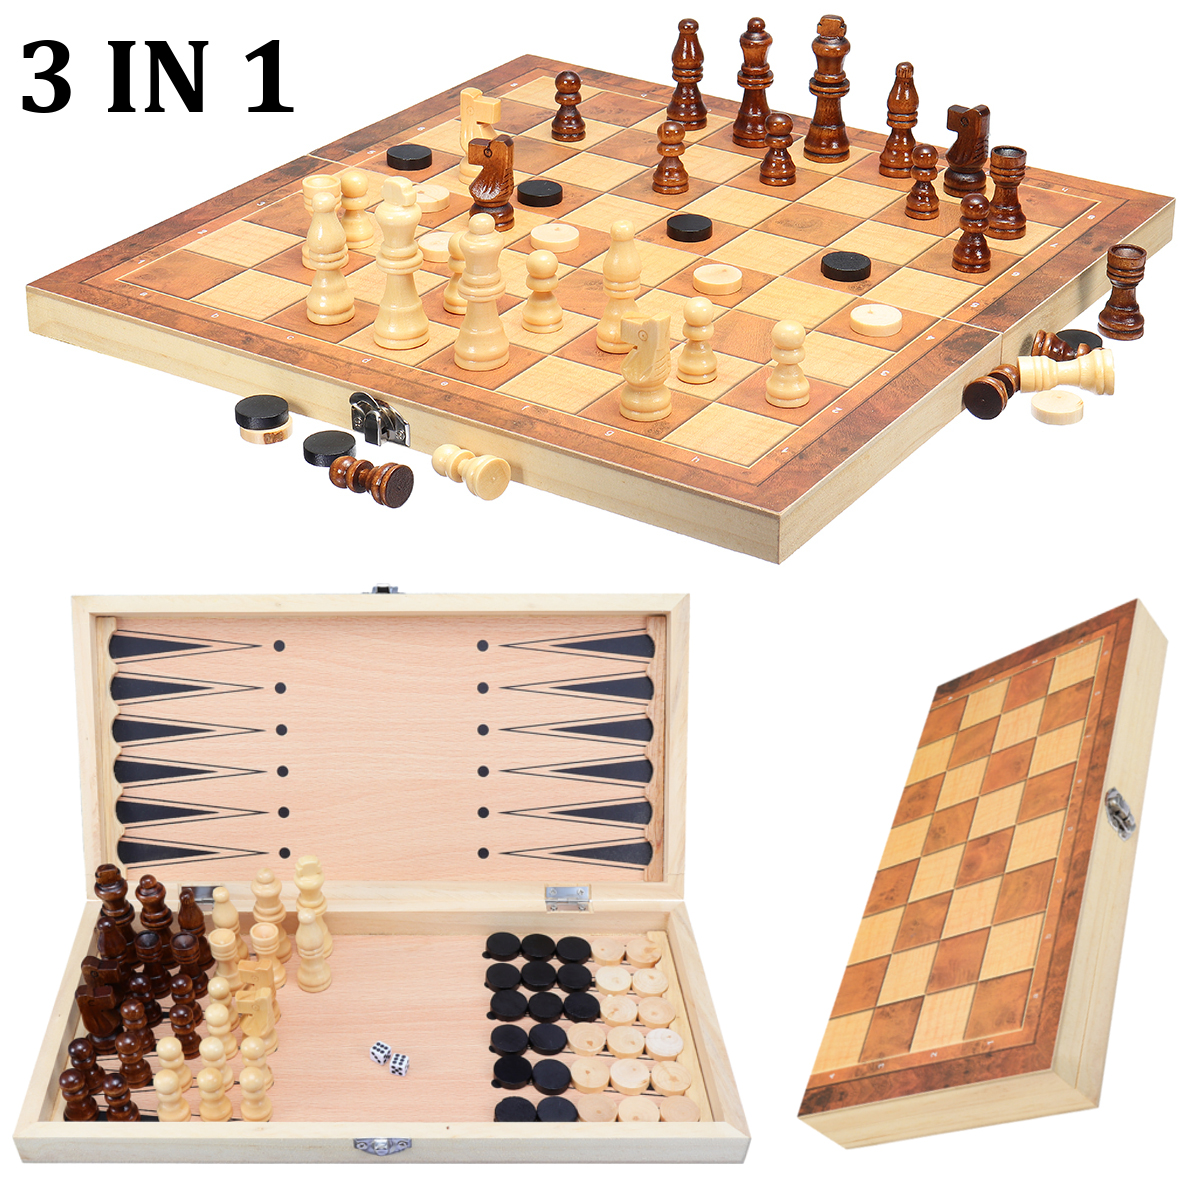 Mrosaa 3 in 1 Folding Wooden Chess Set Board Game Checkers Backgammon Draughts by Mrosaa